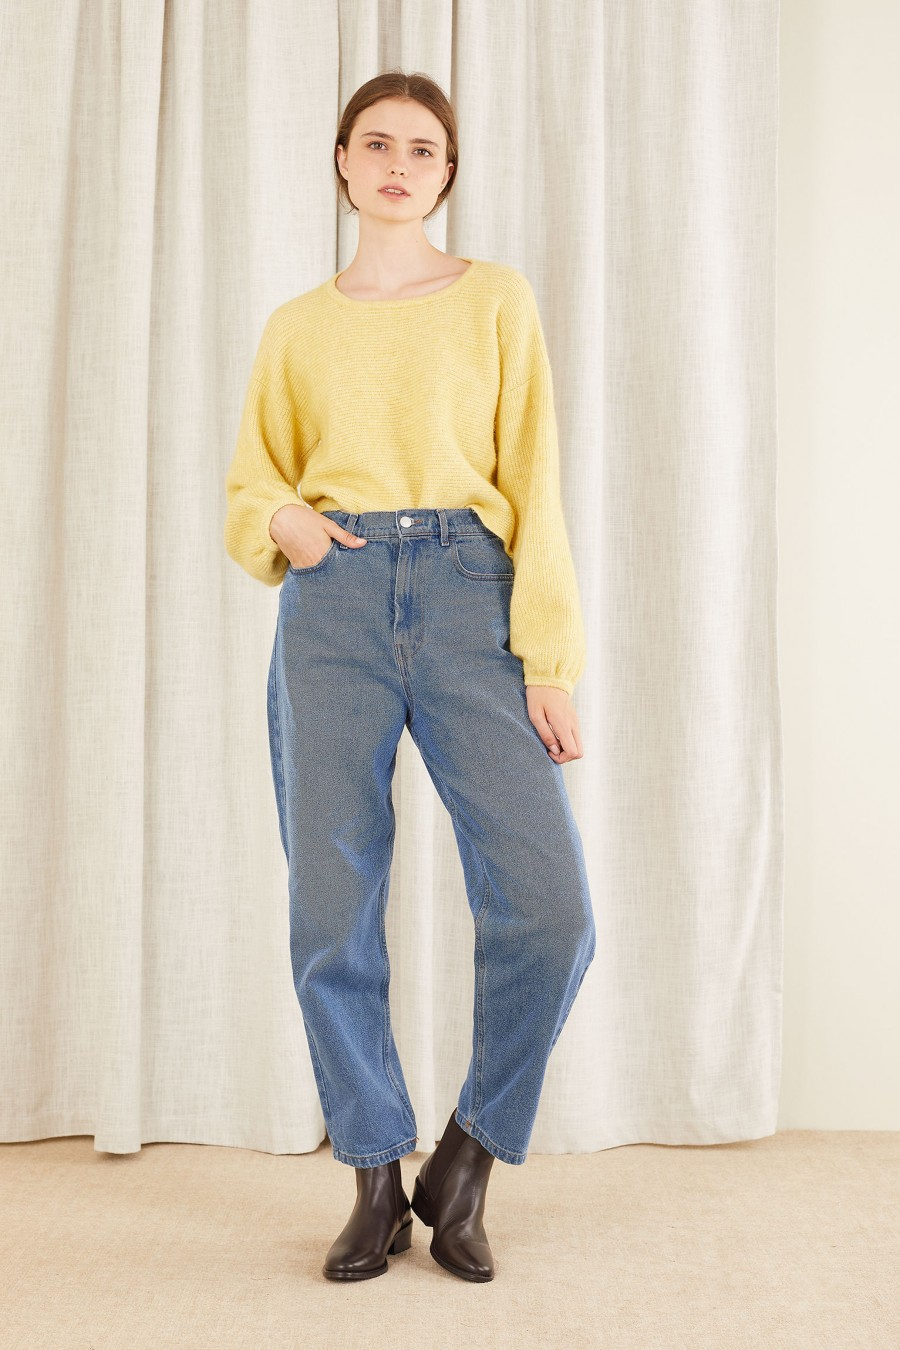 casual look with jeans and yellow jumper